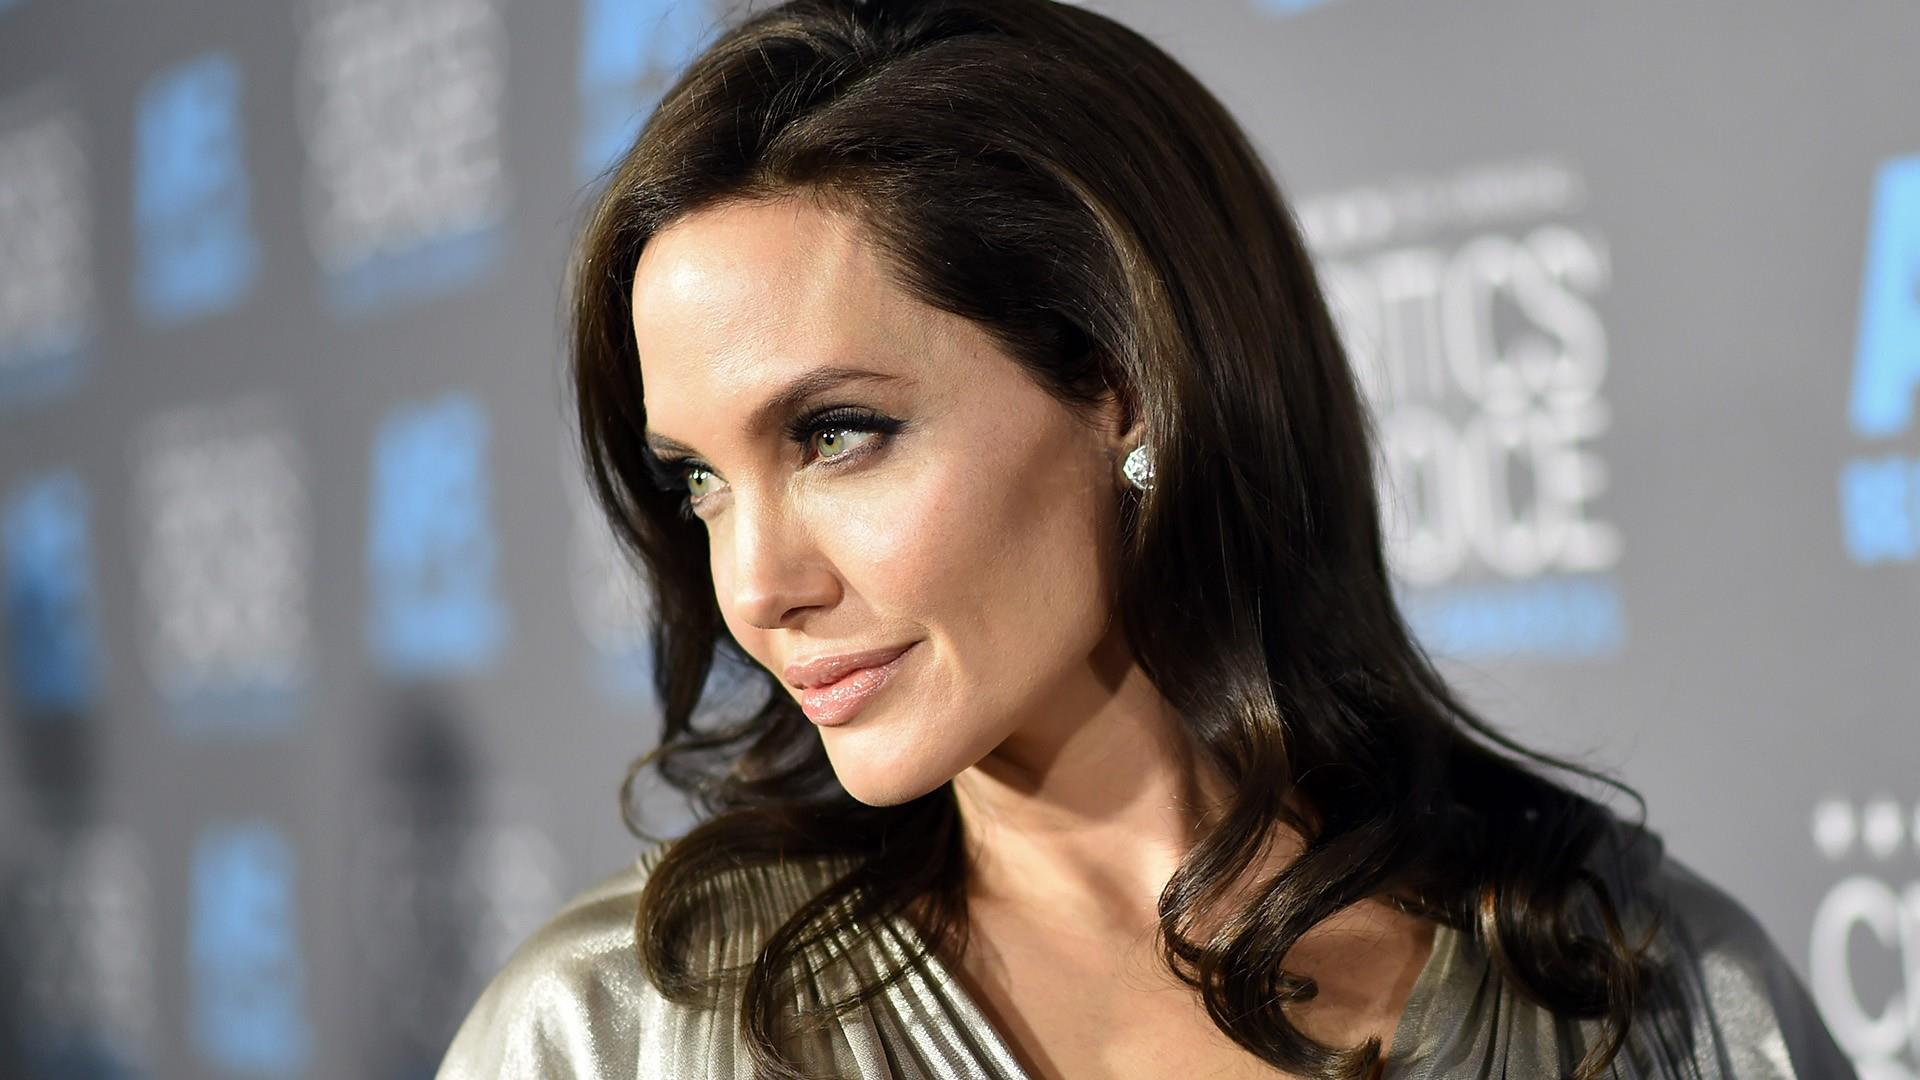 Angelina Jolie News: Angelina Jolie Reportedly Offered To Set 'honey Trap' For